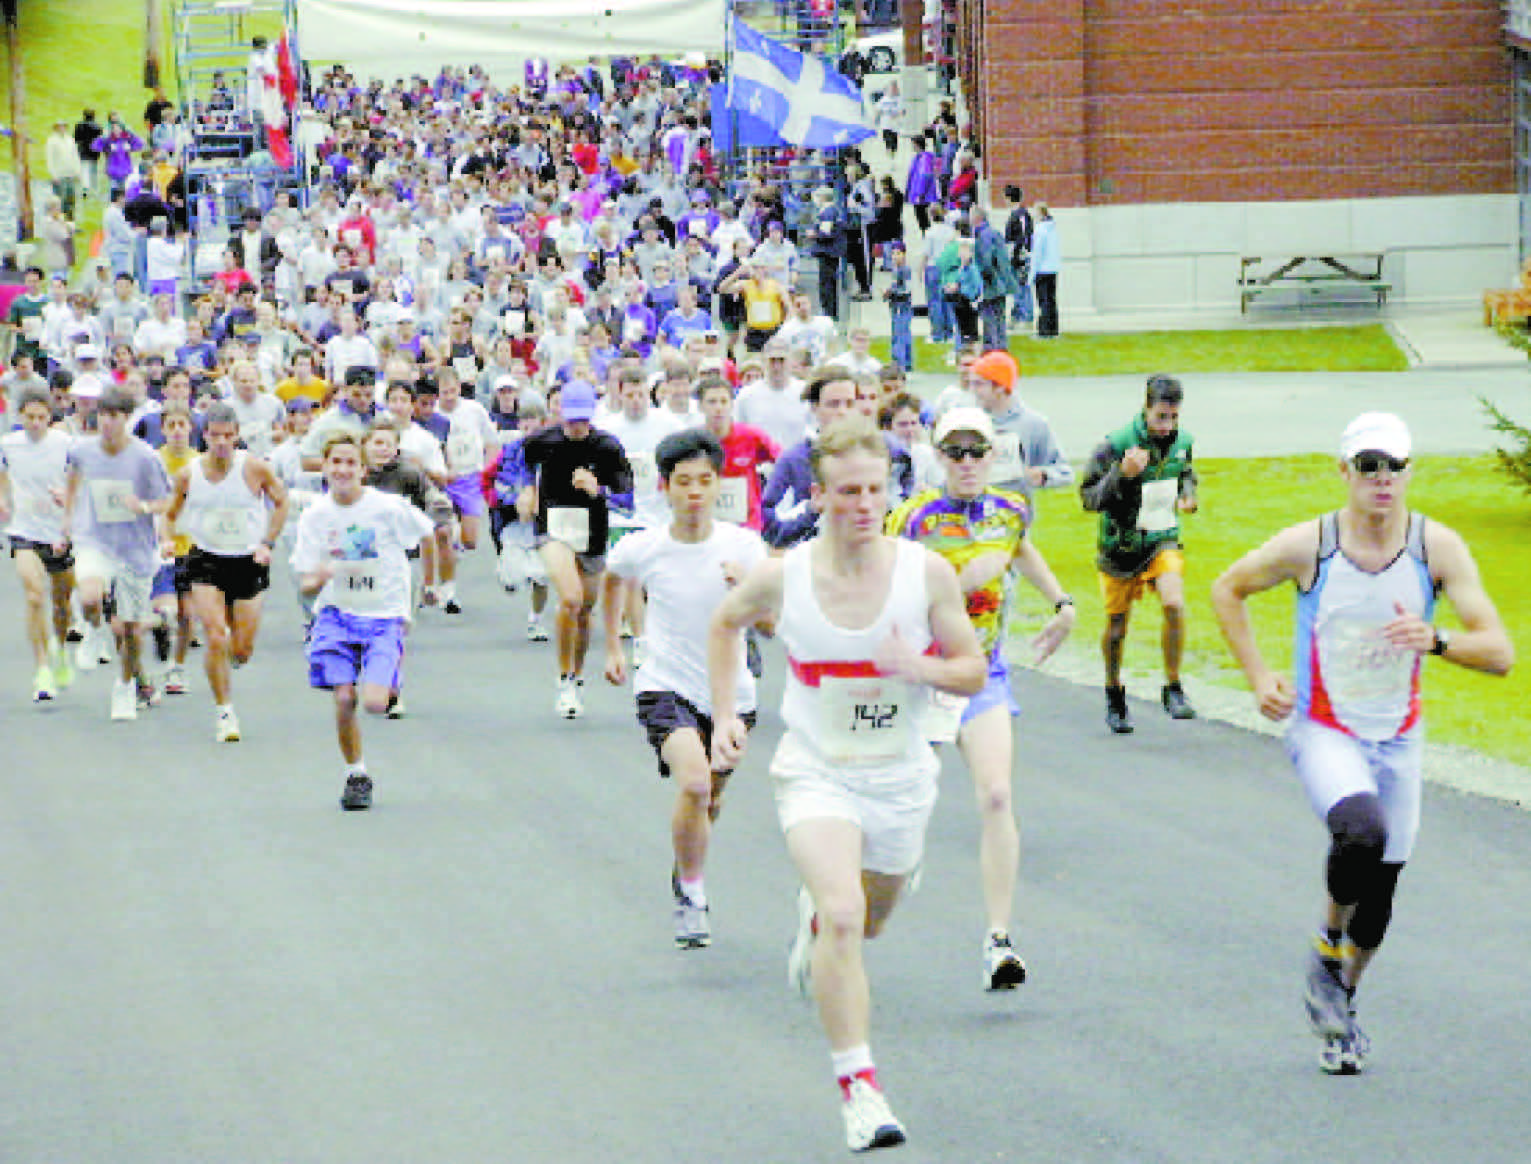 Lennoxville Terry Fox Run: A community tradition going on 38 years